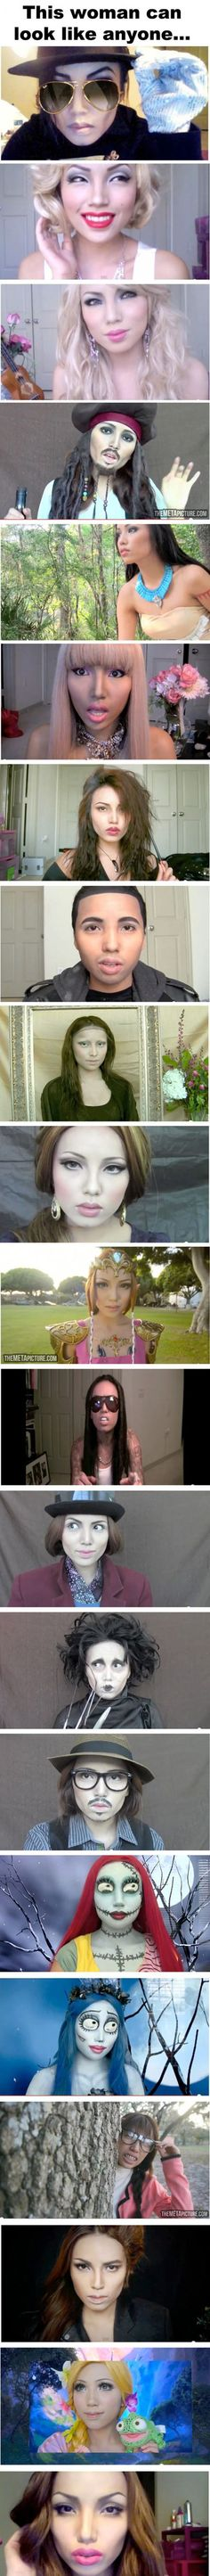 Here is a series of images that show the power of makeup.